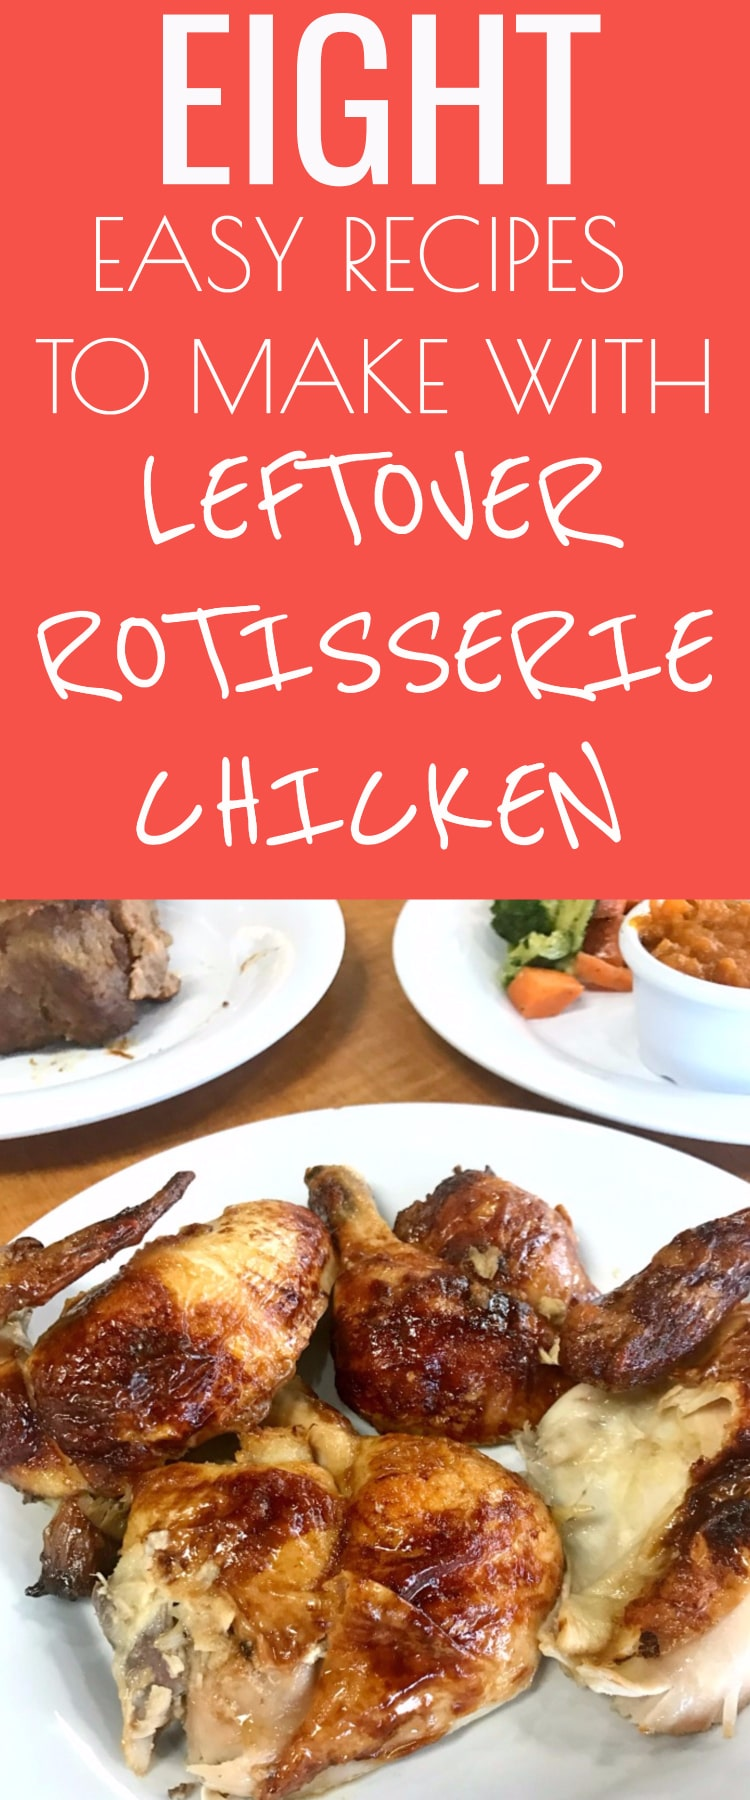 Leftover Rotisserie Chicken Recipes / Rotisserie Chicken / Leftover Rotisserie Chicken / #chicken #homemade #dinner #food #easyrecipes